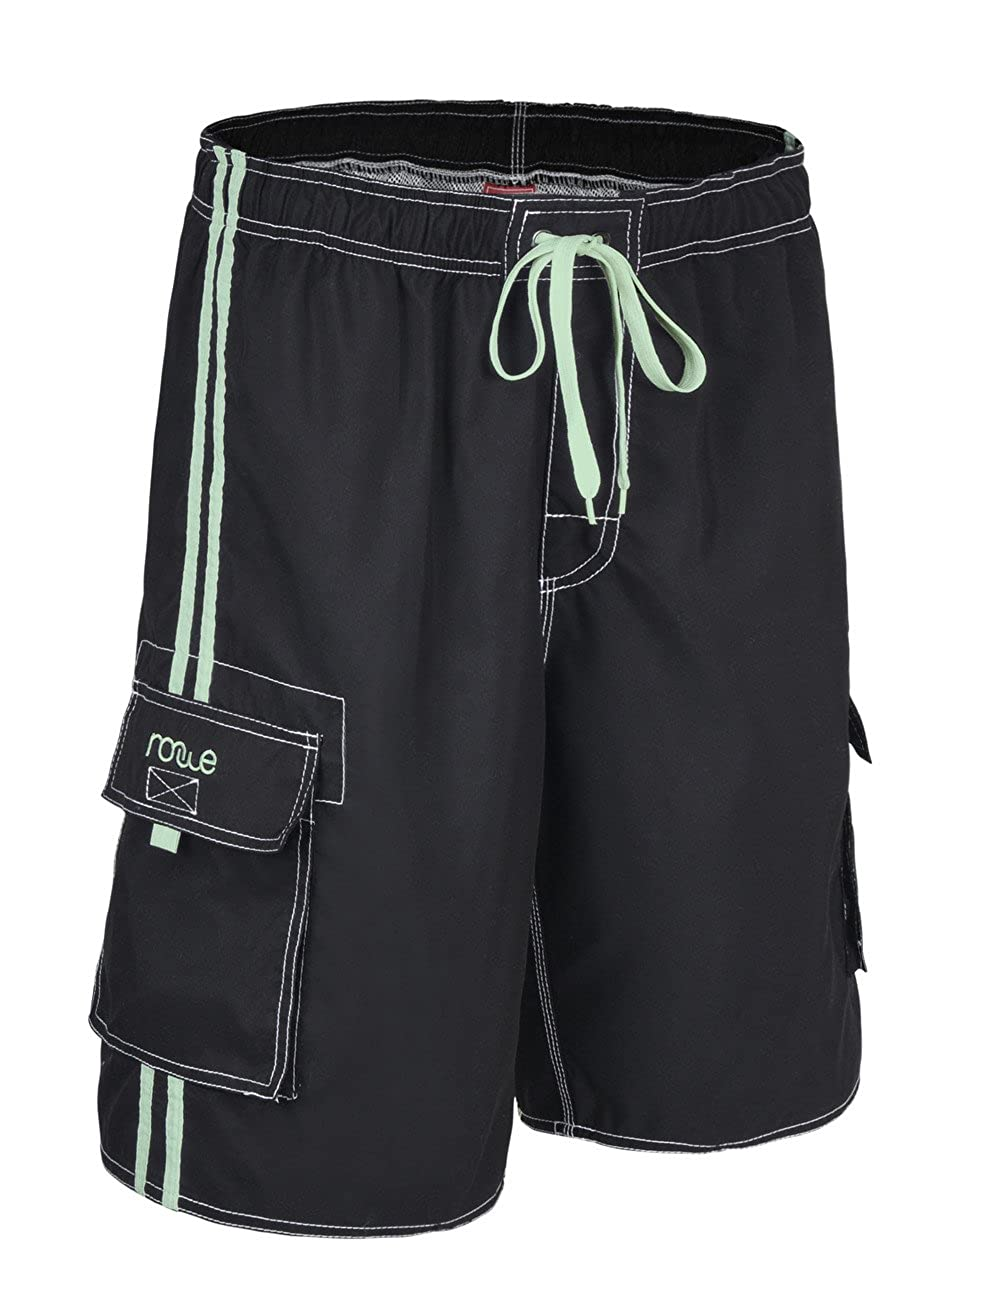 501f0bd7ce Nonwe Men's Beachwear Board Shorts Quick Dry with Mesh Lining Swim Trunks |  Amazon.com